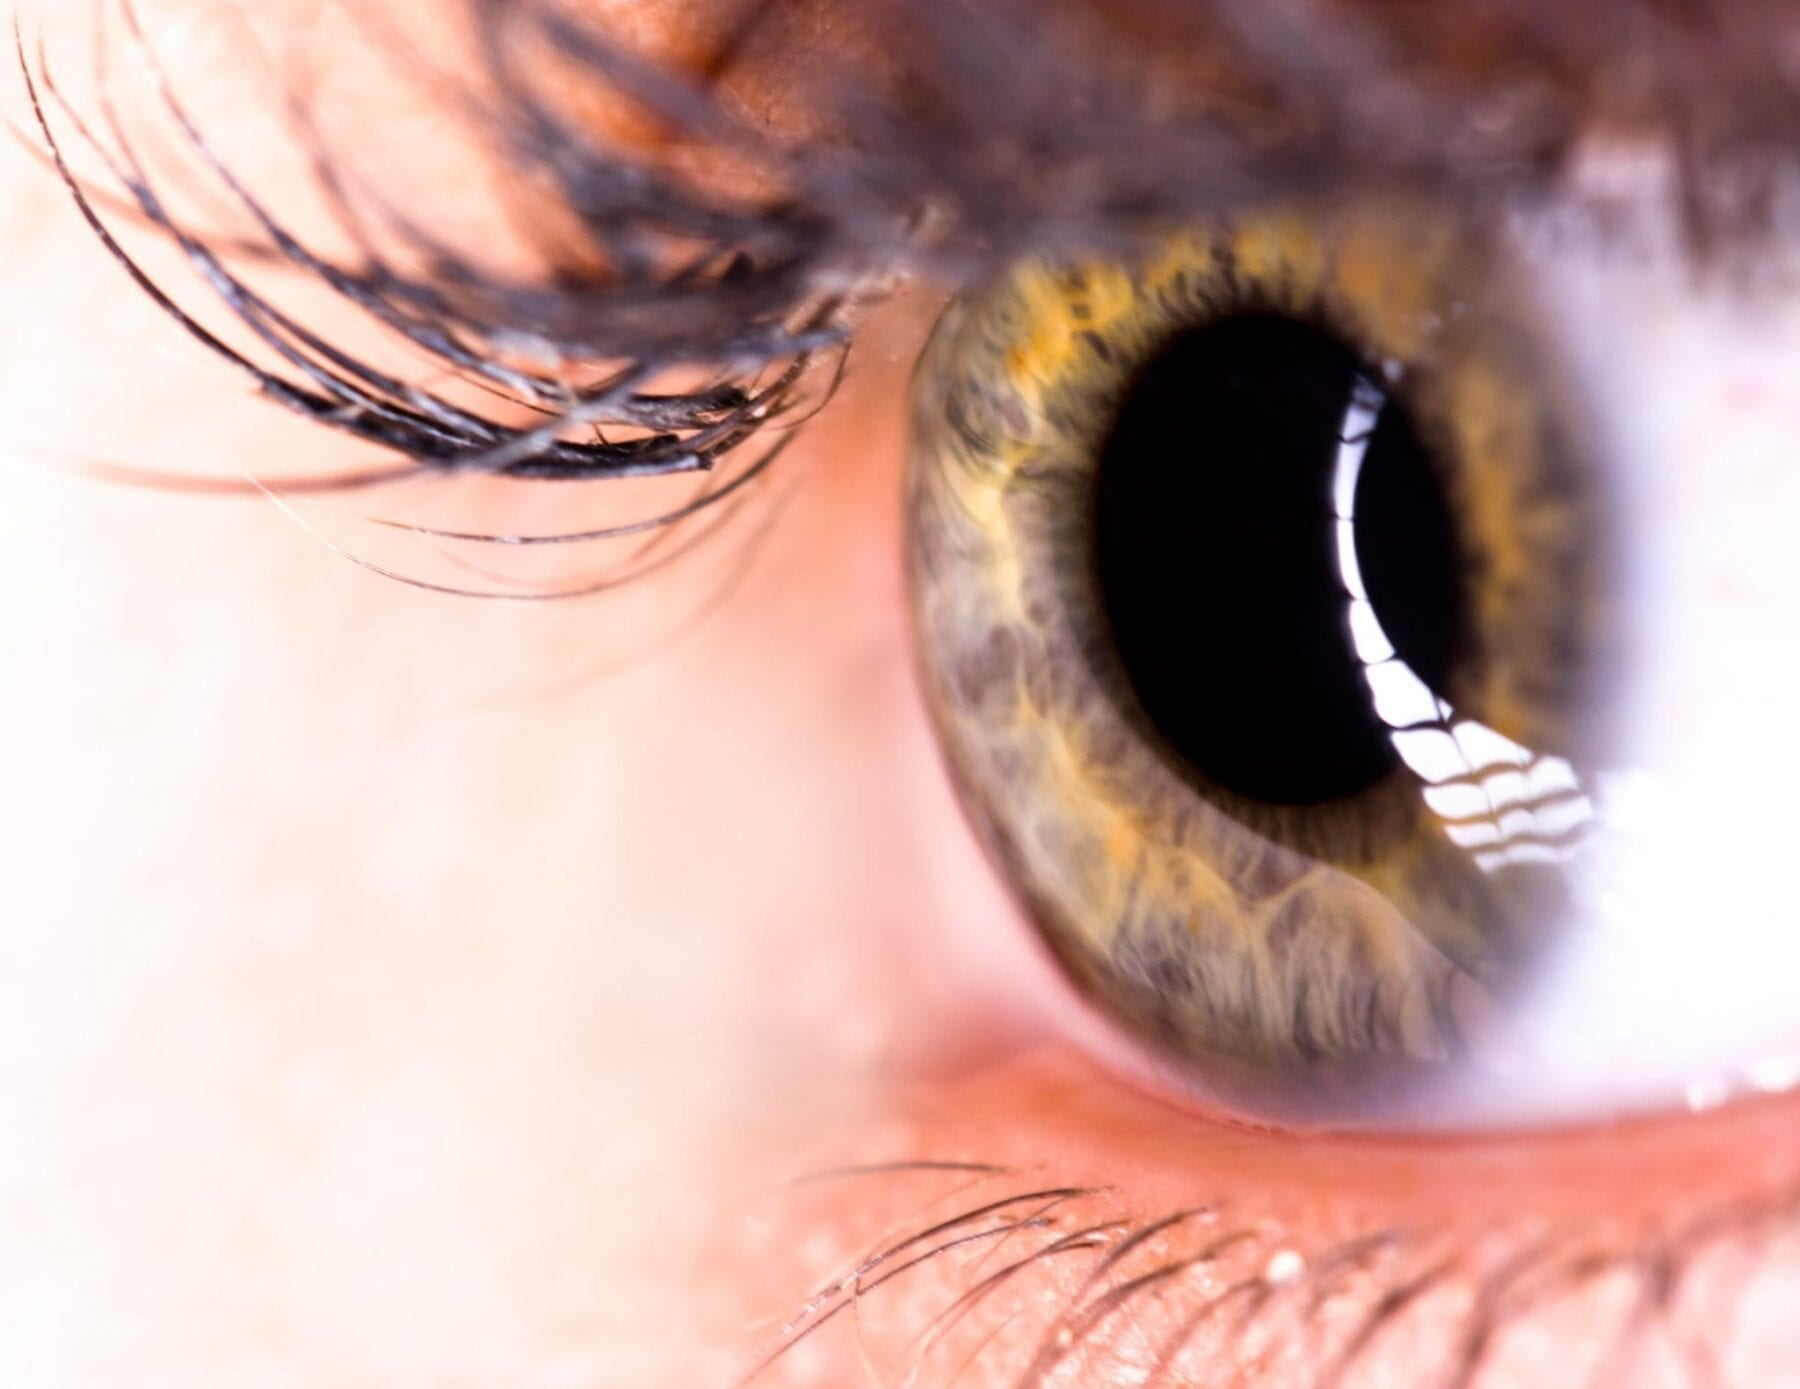 Stem Cell Injection May Soon Reverse Vision Loss Caused By Age-Related Macular Degeneration